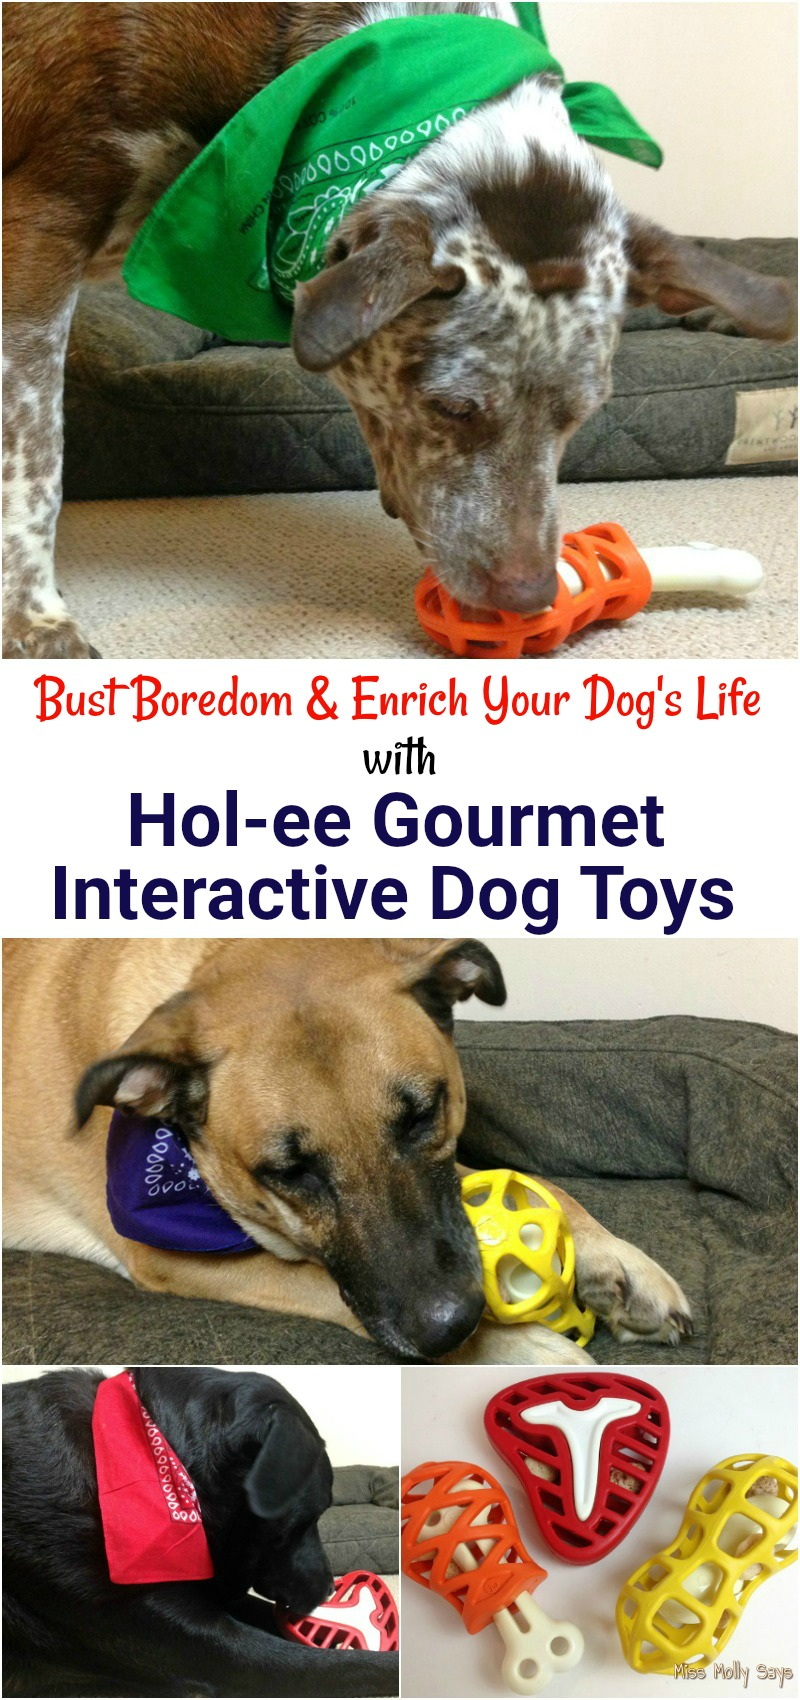 Bust Boredom and Enrich Your Dog's Life with the Hol-ee Gourmet Line of Interactive Dog Treat Toys